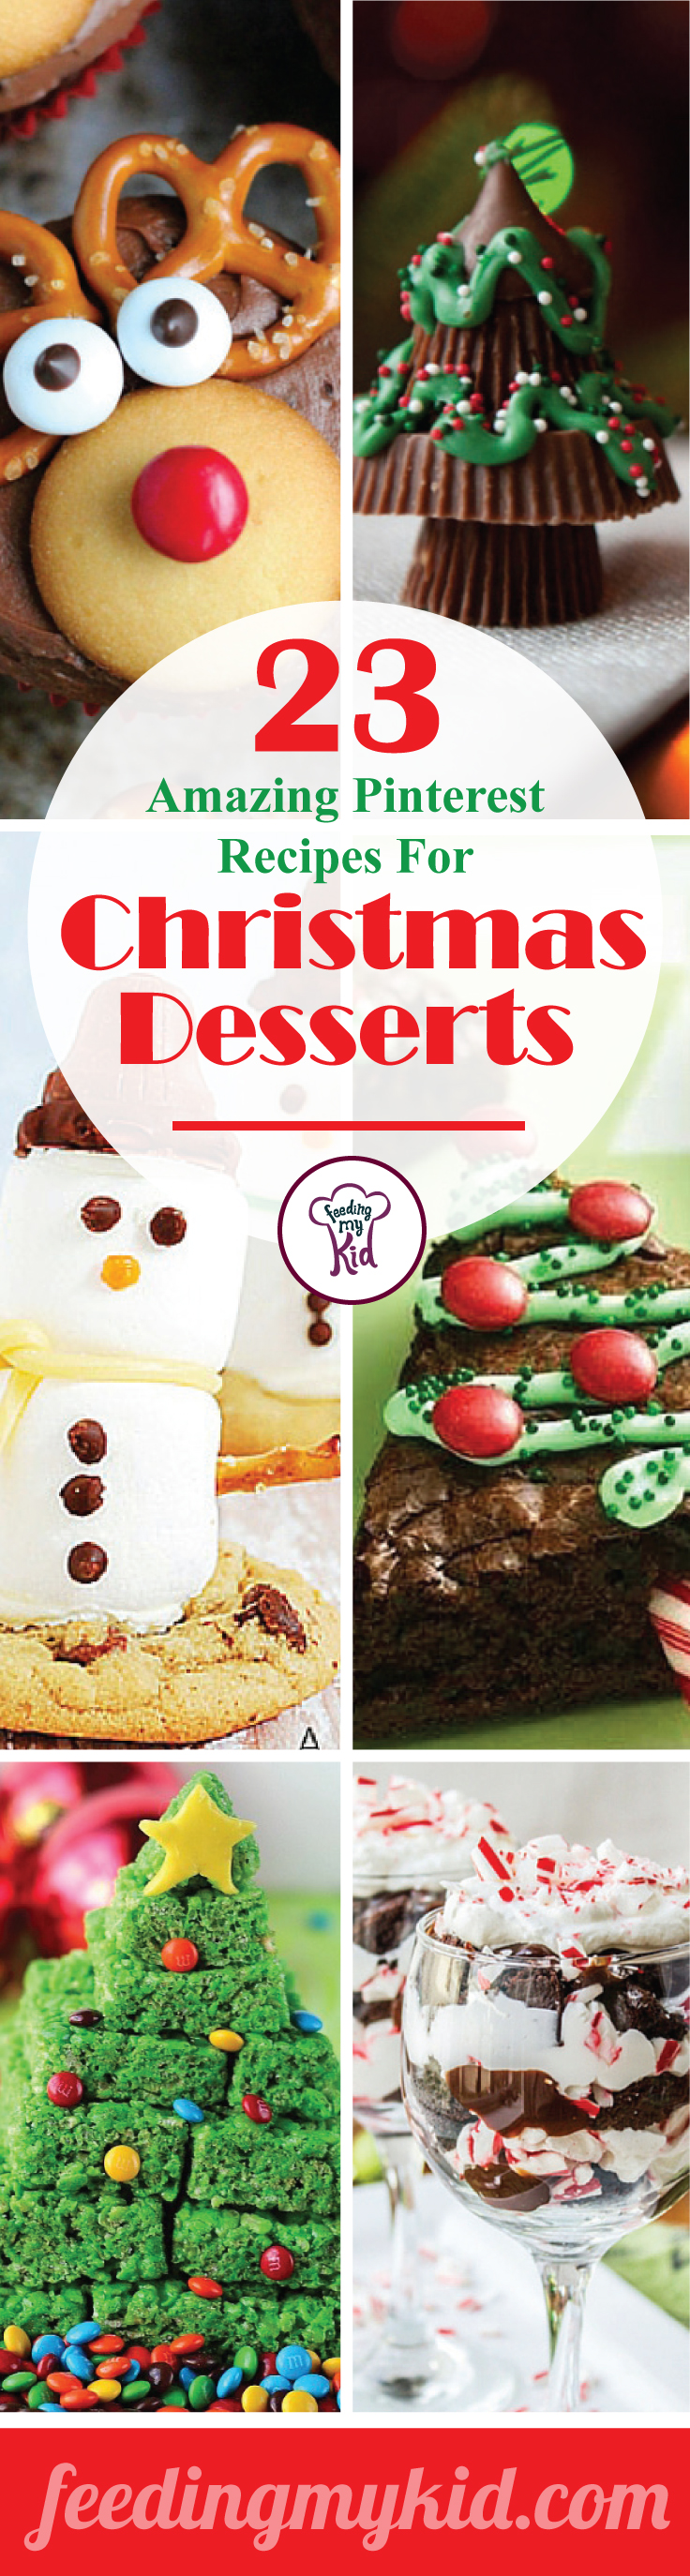 23 Amazing Pinterest Recipes For Christmas Desserts Christmas Desserts Yummy Christmas Treats Christmas Food